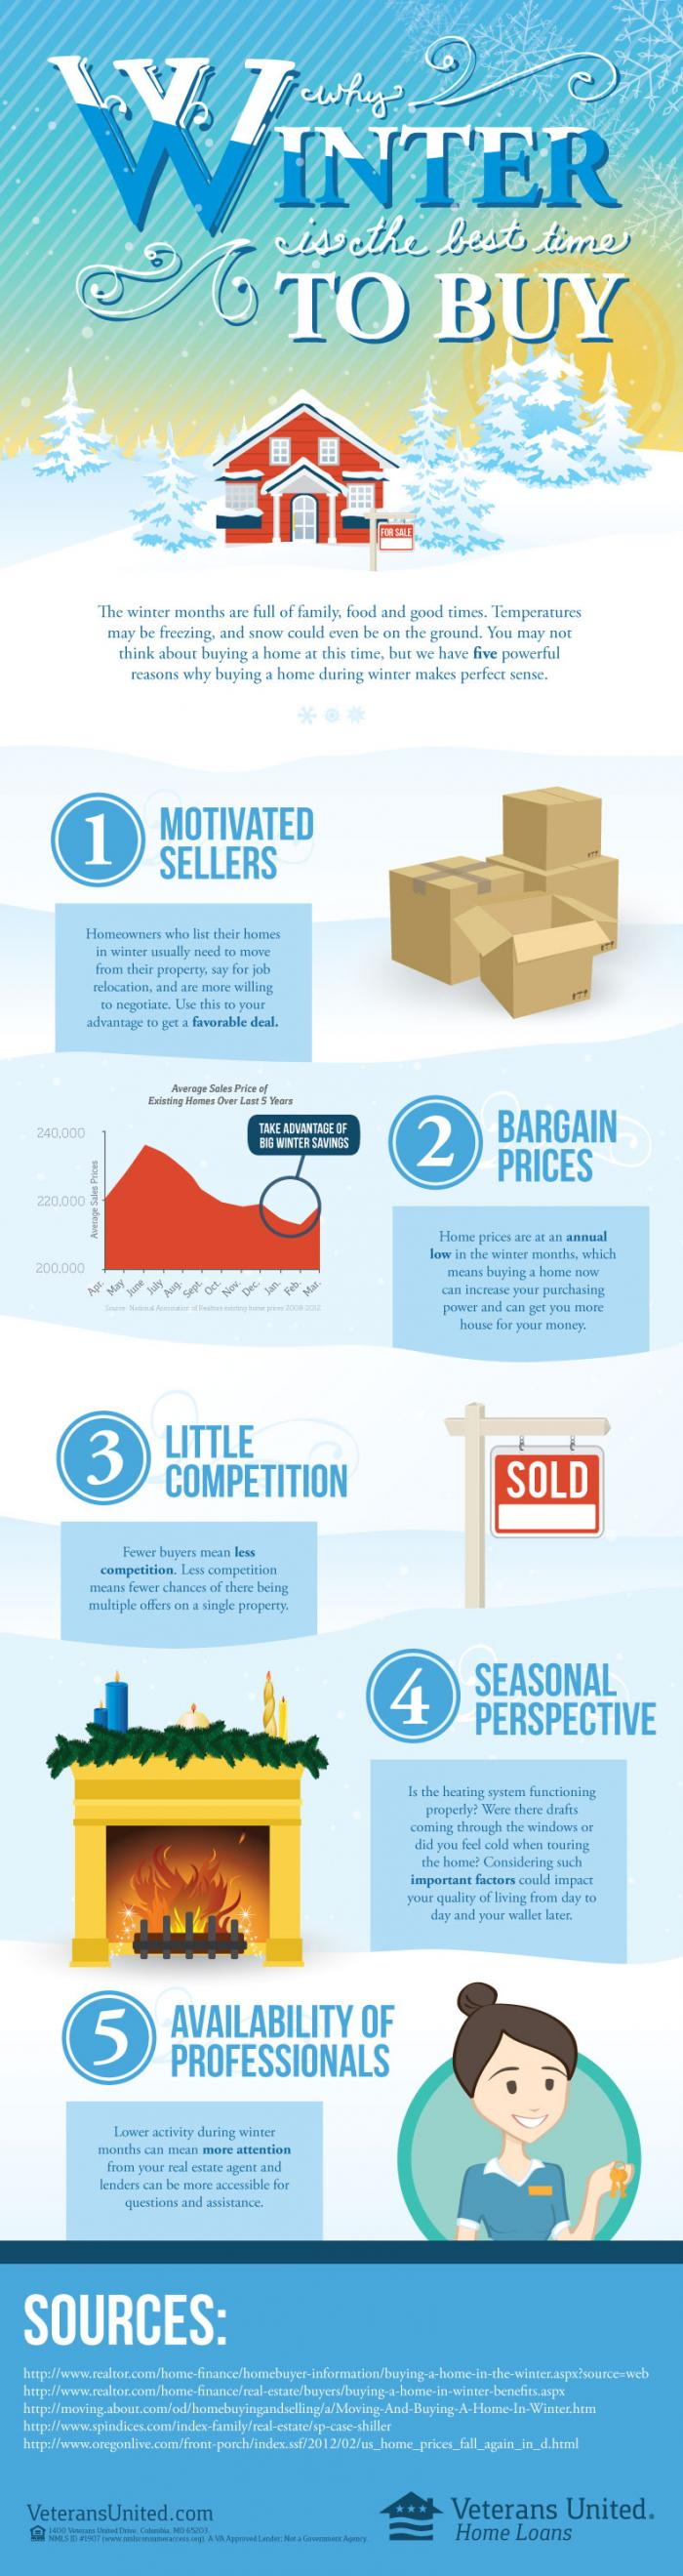 Winter Home Buying Guide Infographic